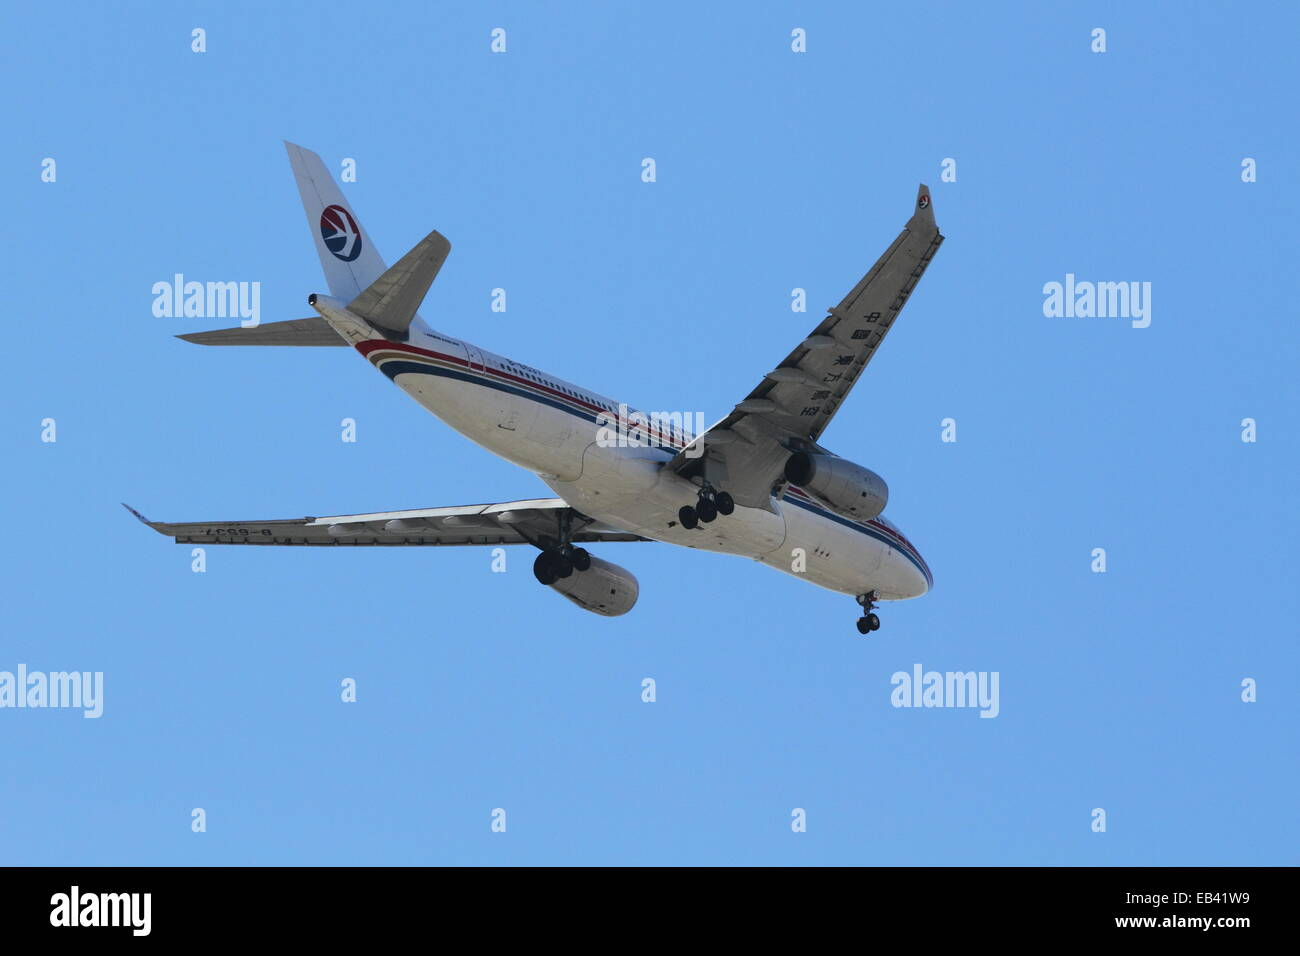 A China Eastern Airlines Airbus A330-200 registration B-6537 arriving at Sydney Airport, Sydney, Australia - Stock Image